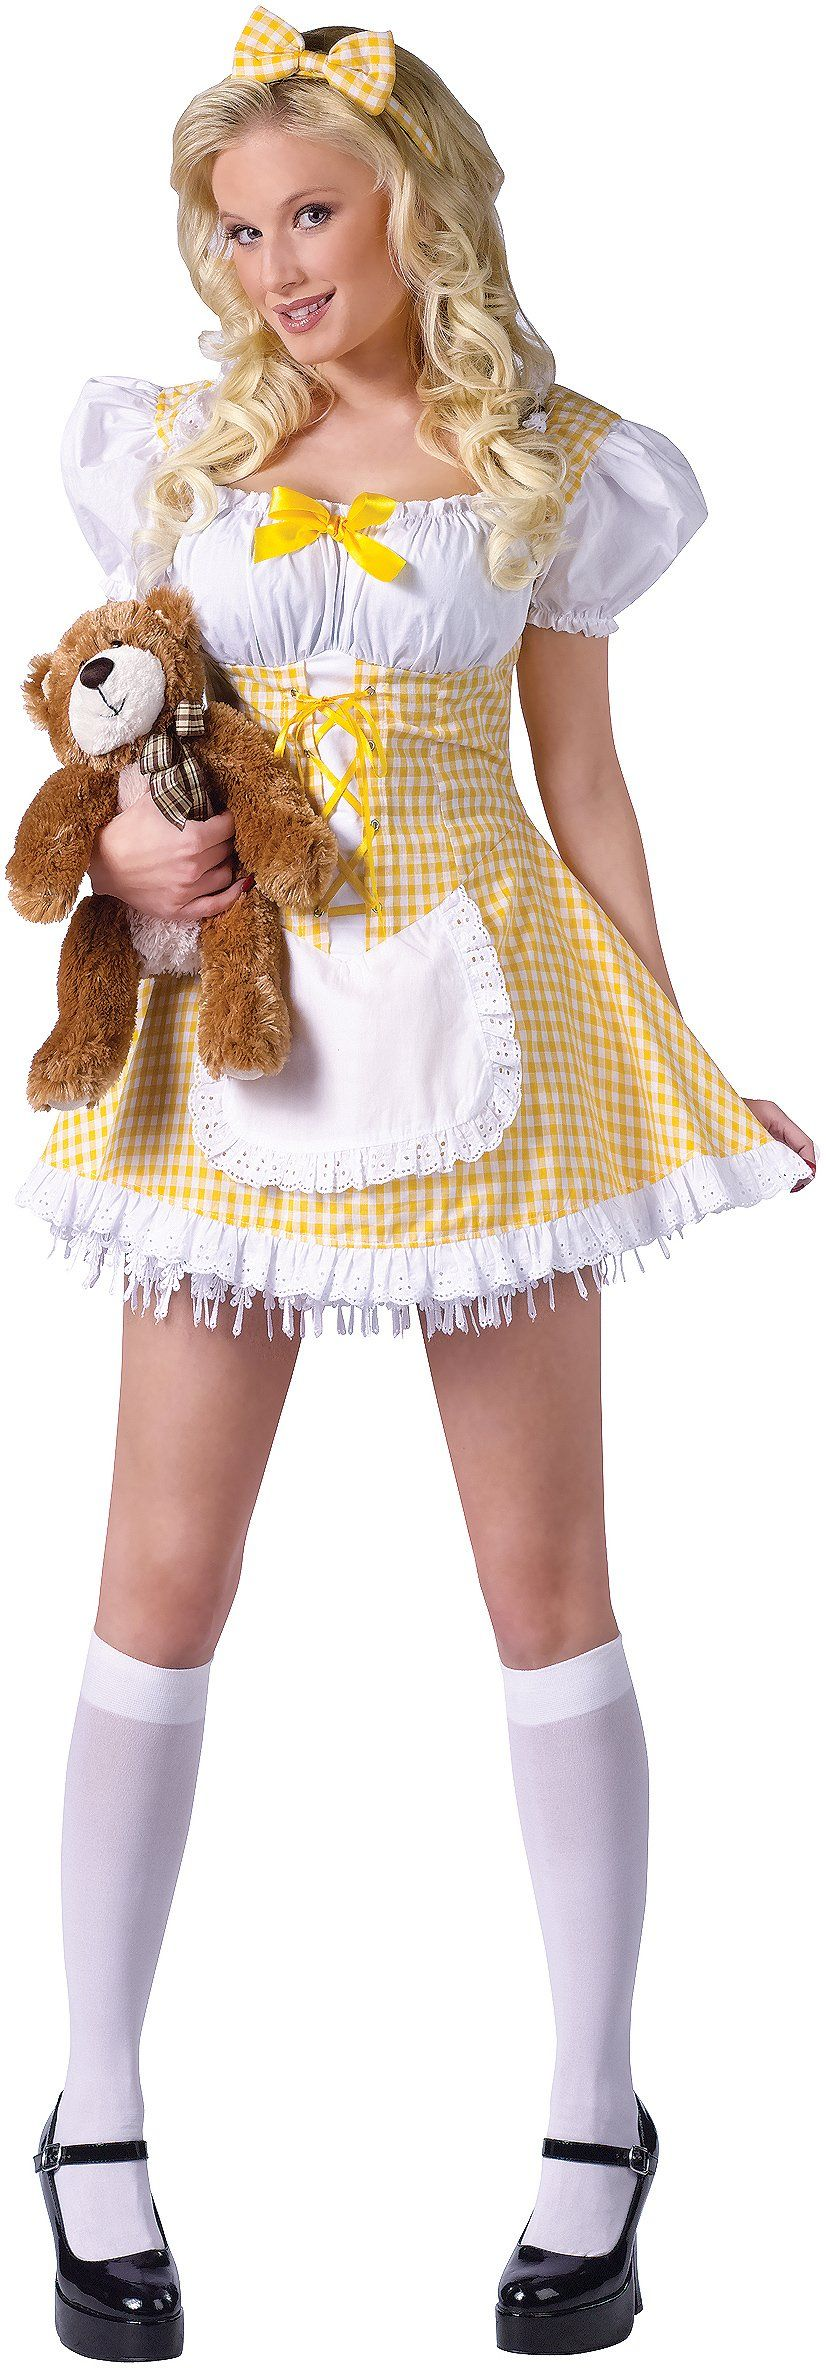 our goldilocks costumes make great storybook costumes for halloween get together with a bear costume for a great group or couples goldilocks and the three - Goldilocks Halloween Costumes